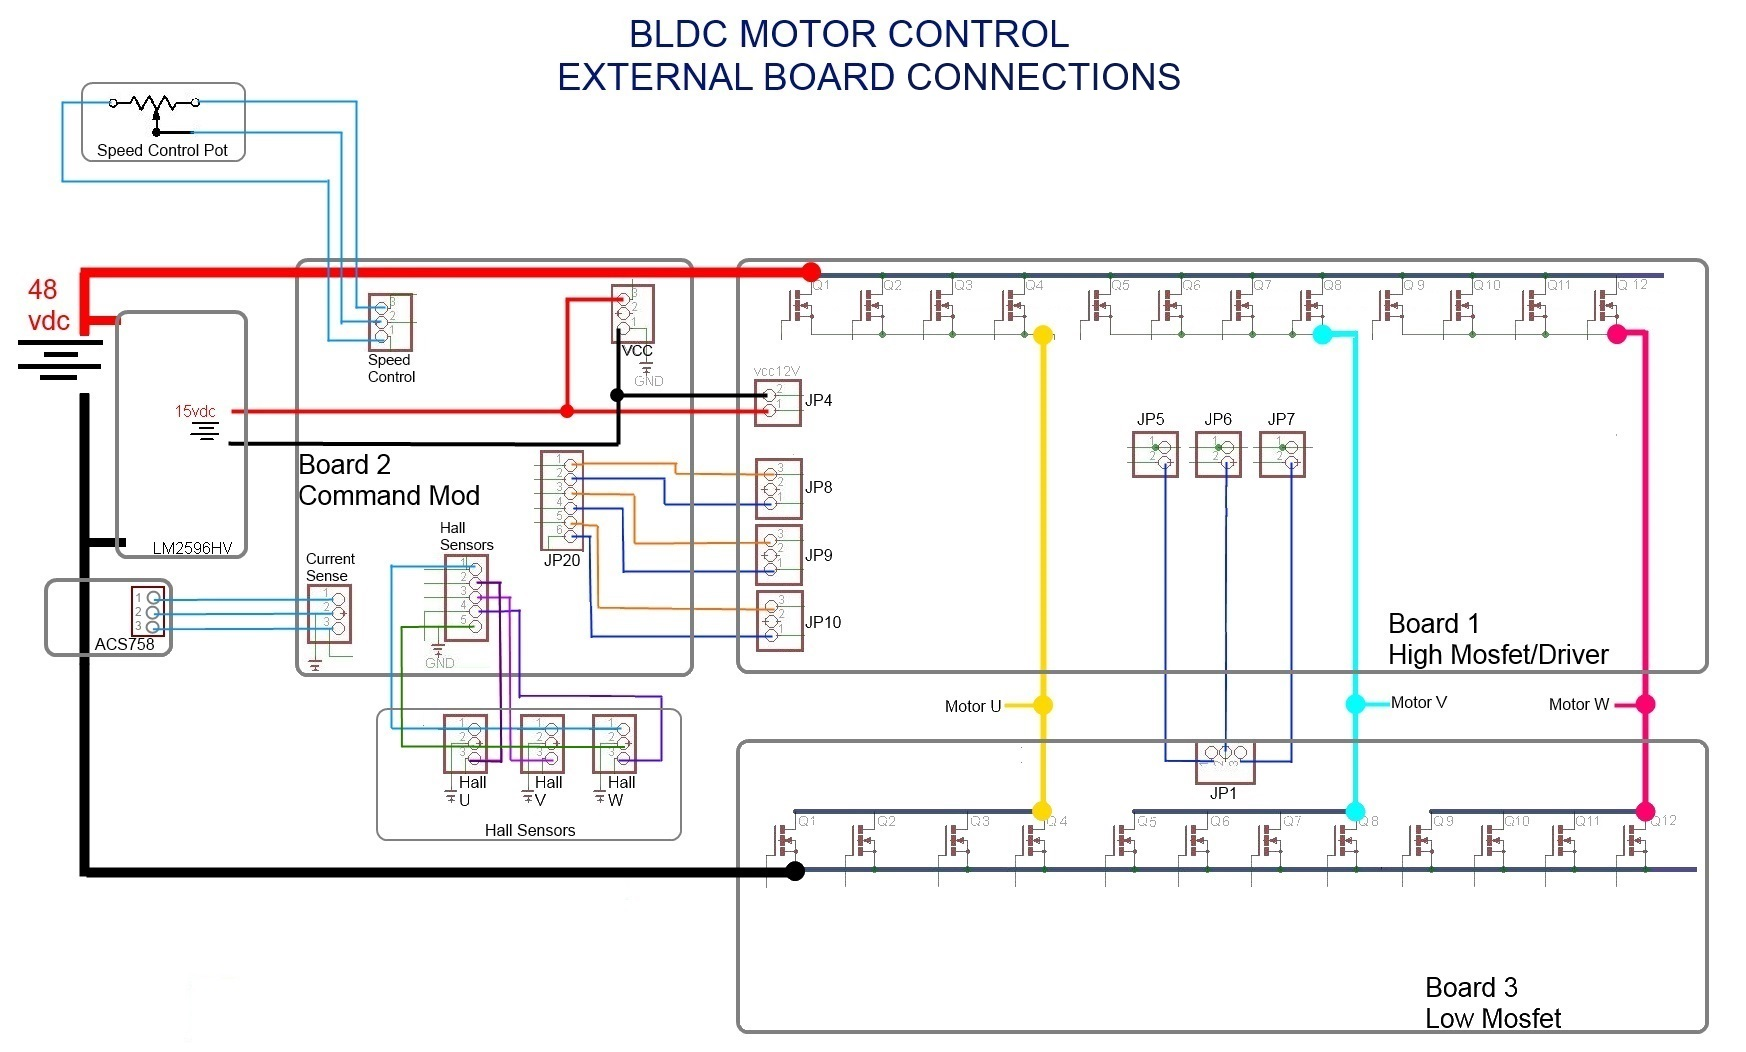 3 Phase Brushless Dc Motor\u201d \u201c3 Phase Brushless Dc Motor  Controller 4 Pole Brushless ESC Brushless Esc Diagram